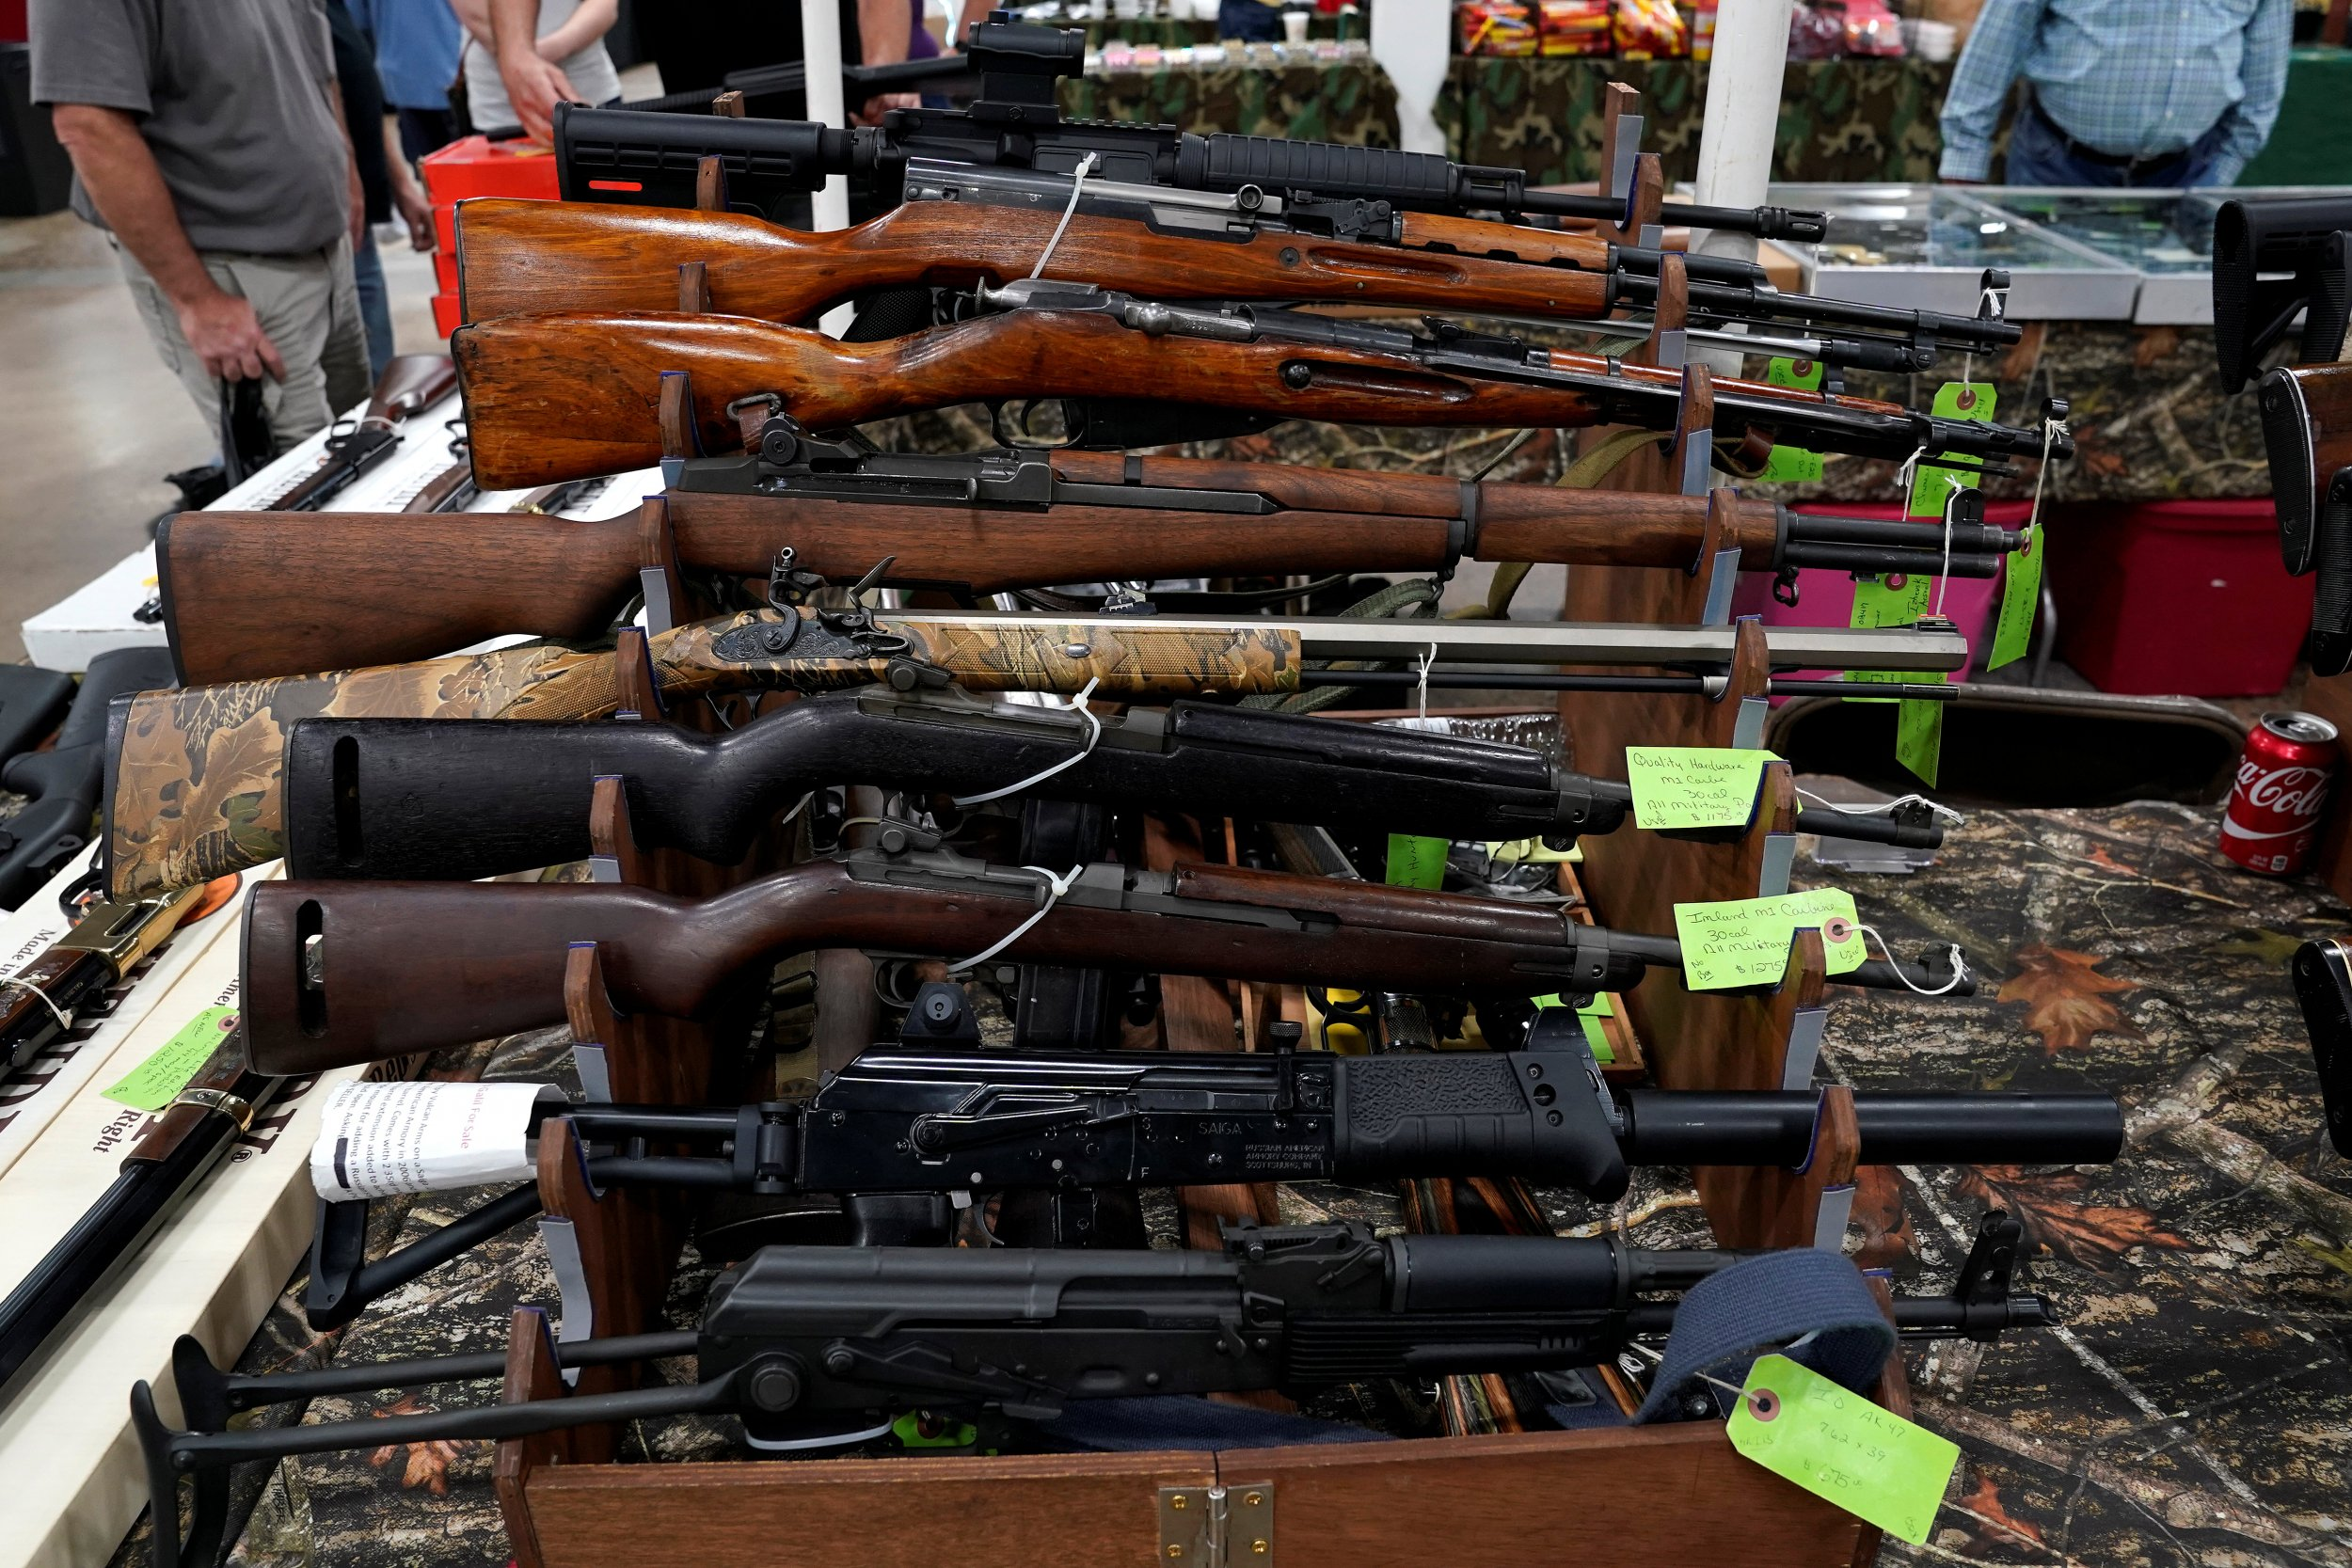 10_16_Guns_Banned_CaliforniaSchools_JerryBrown